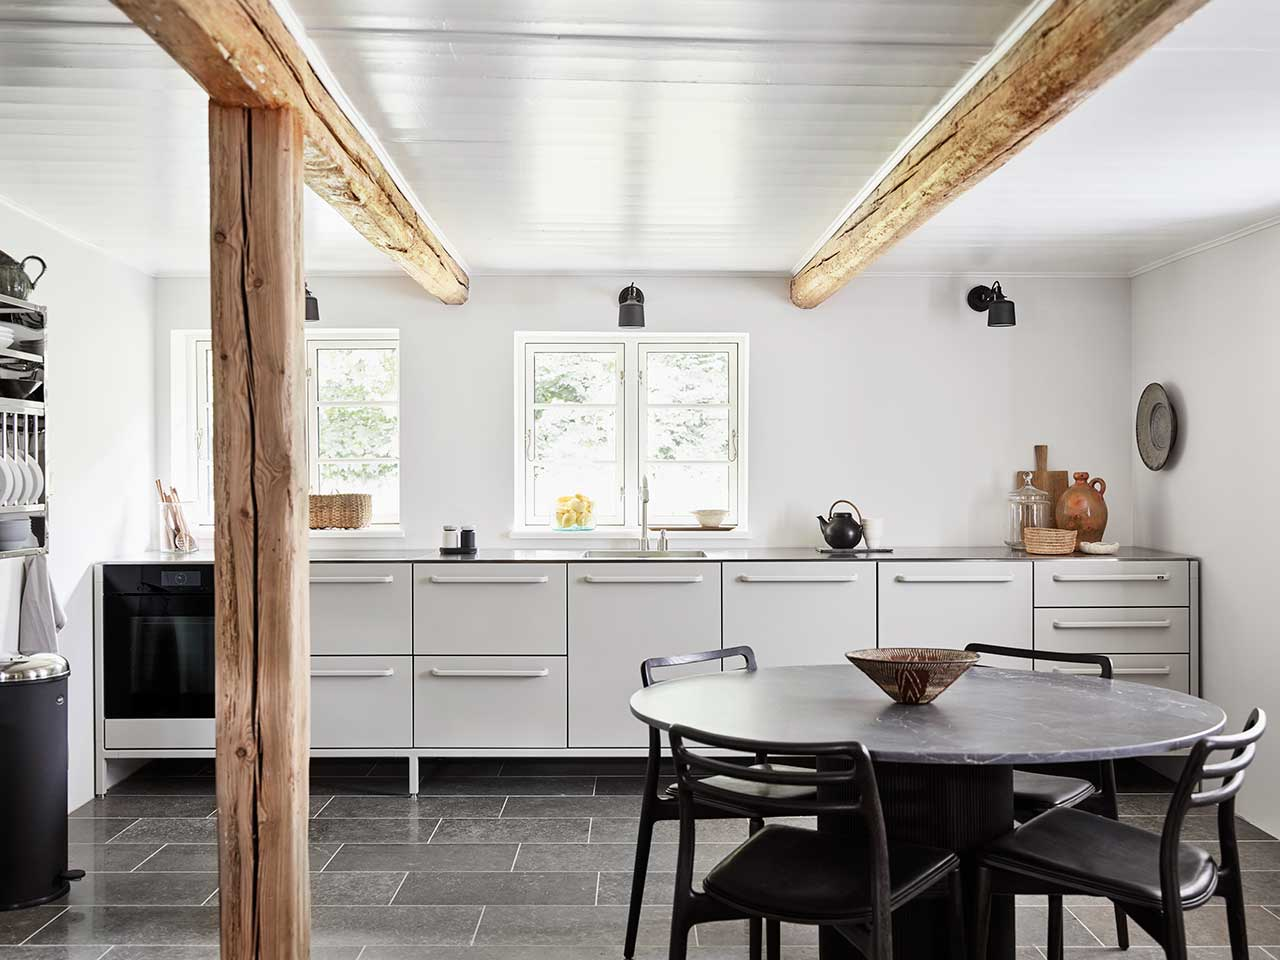 Vipp Turns a 1775 Farmhouse on the Danish Island of Lolland Right into a Lodge